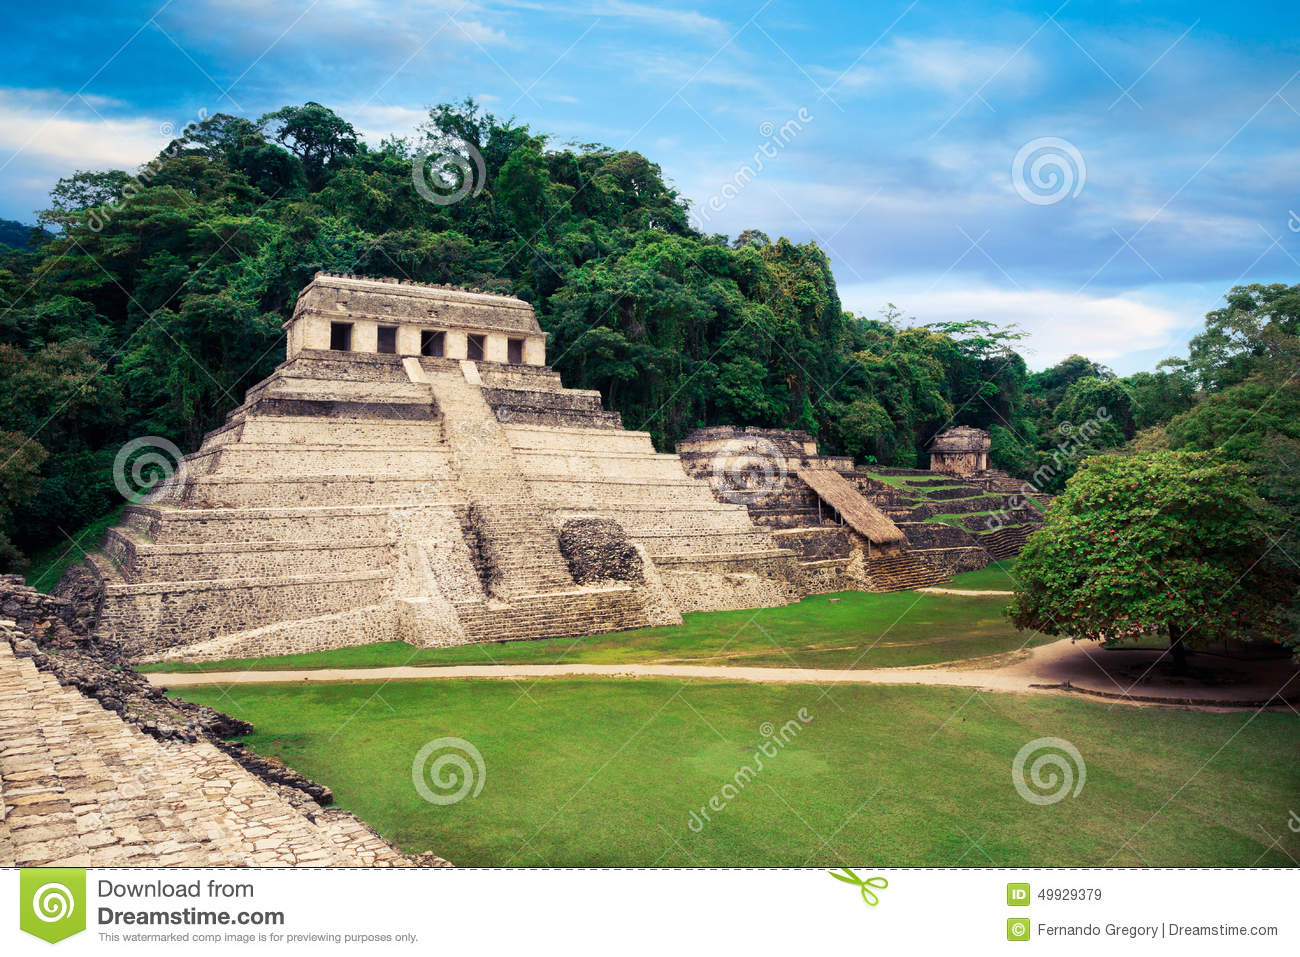 The Palace observation tower in Palenque, Maya city in Chiapas, Mexico